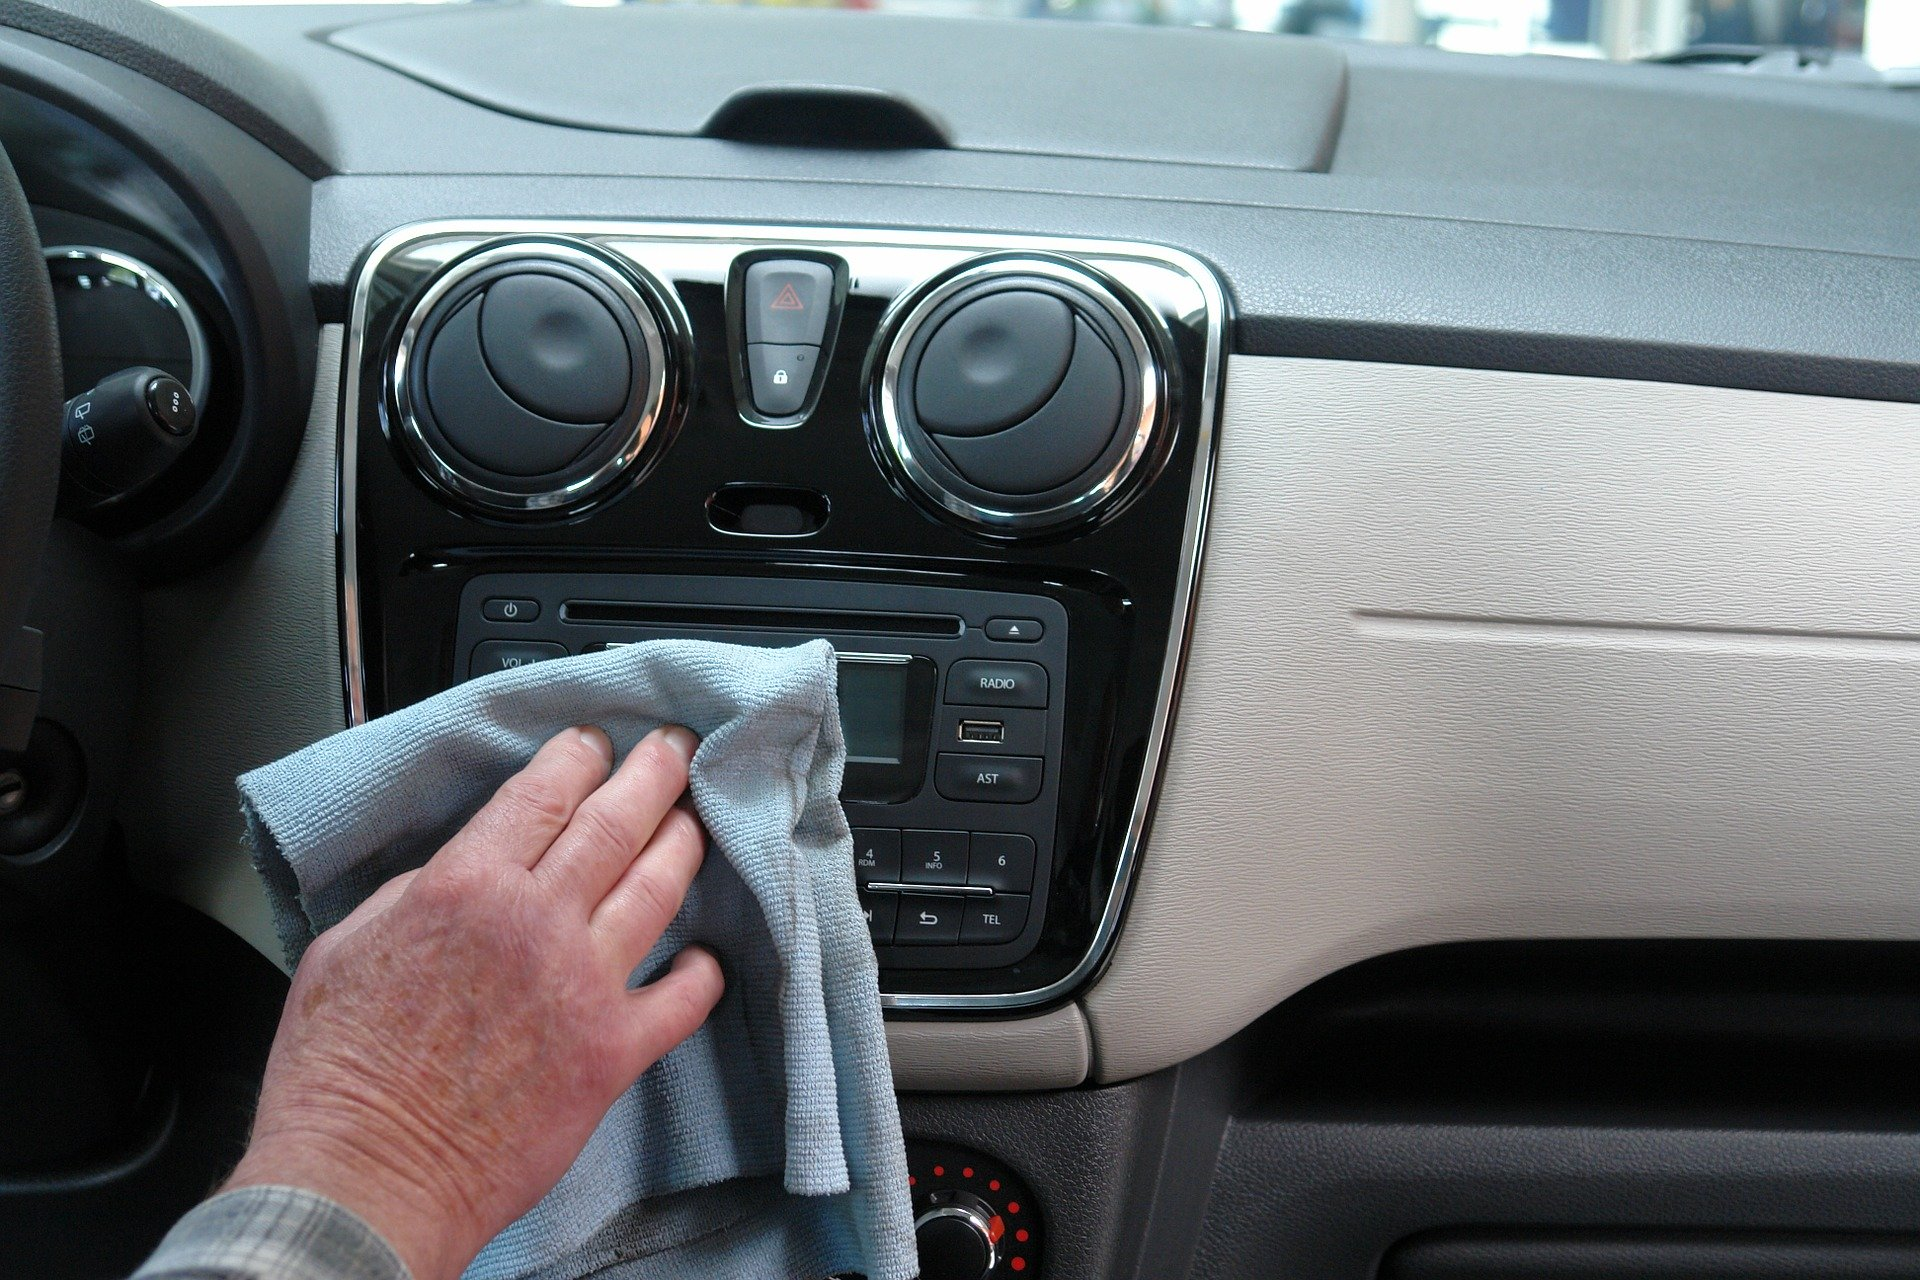 Cleaning car to prevent spread of Coronavirus